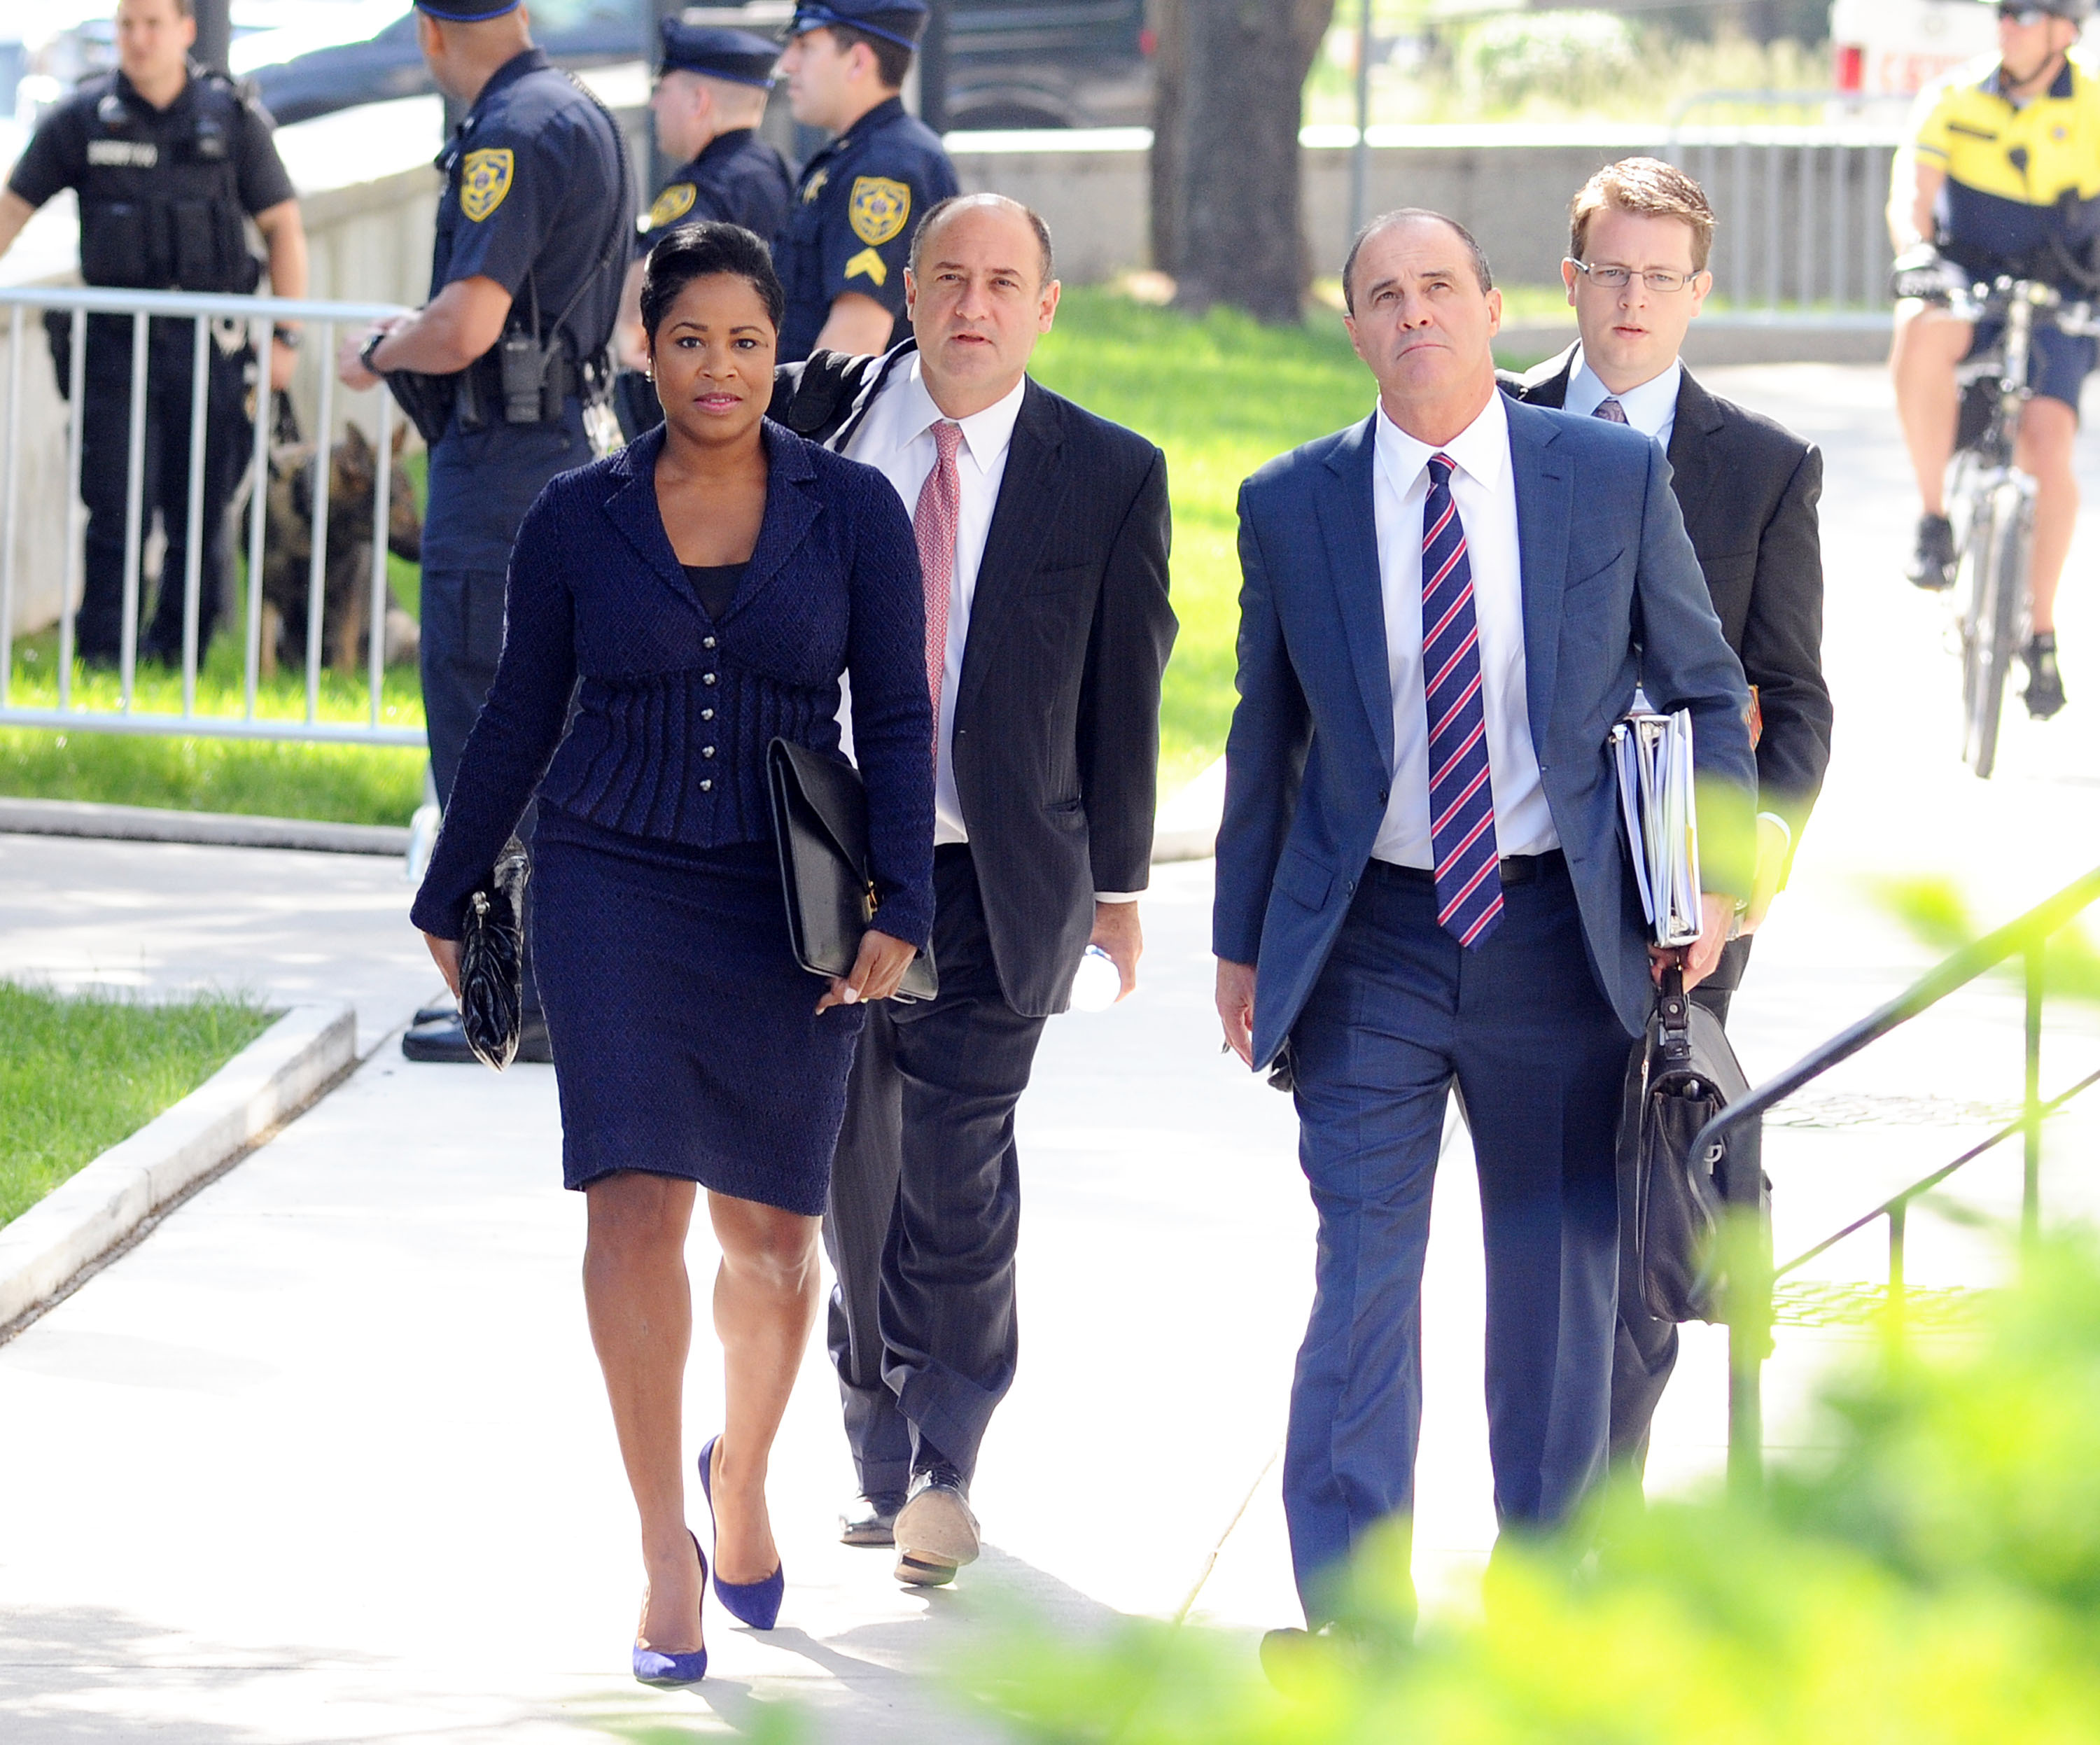 Bill Cosby's legal team, including Monique Pressley, left, and Brian McMonagle, right, arrive for a preliminary hearing on sexual assault charges at Montgomery County Courthouse on May 24, 2016 in Norristown, Pennsylvania. (William Thomas Cain/Getty)